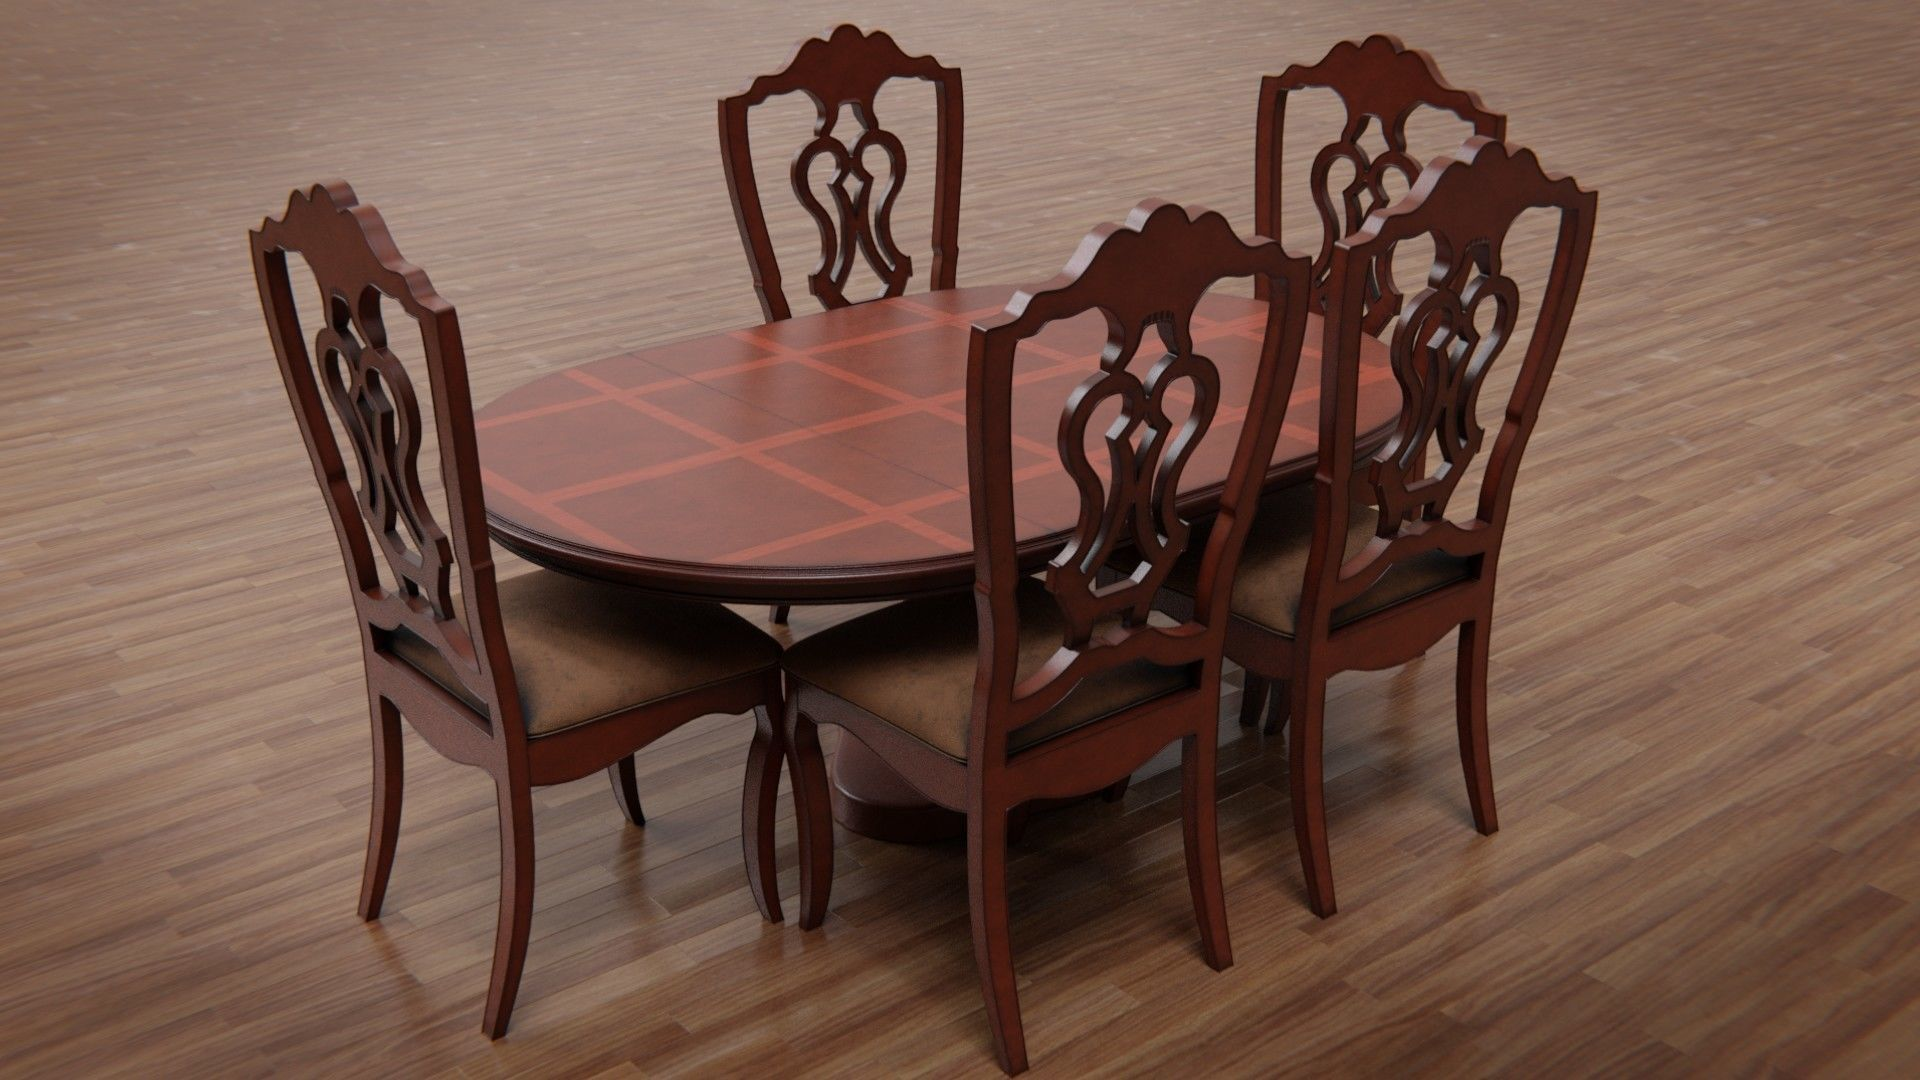 Dining Table and Chair  9D model